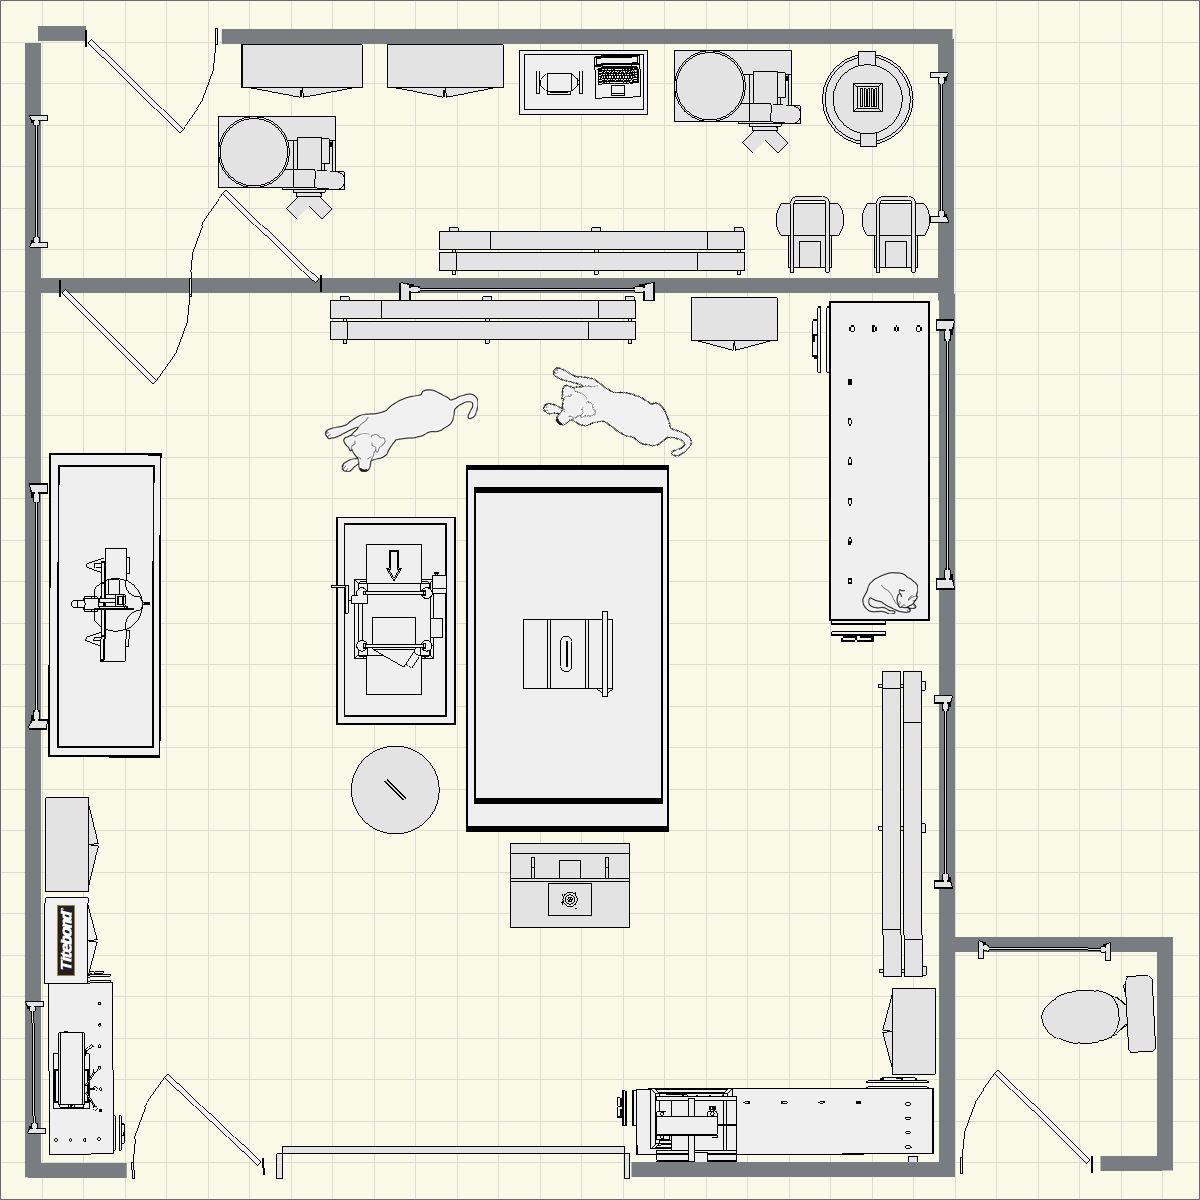 Creating using dream shop planner for Garage layout planner online